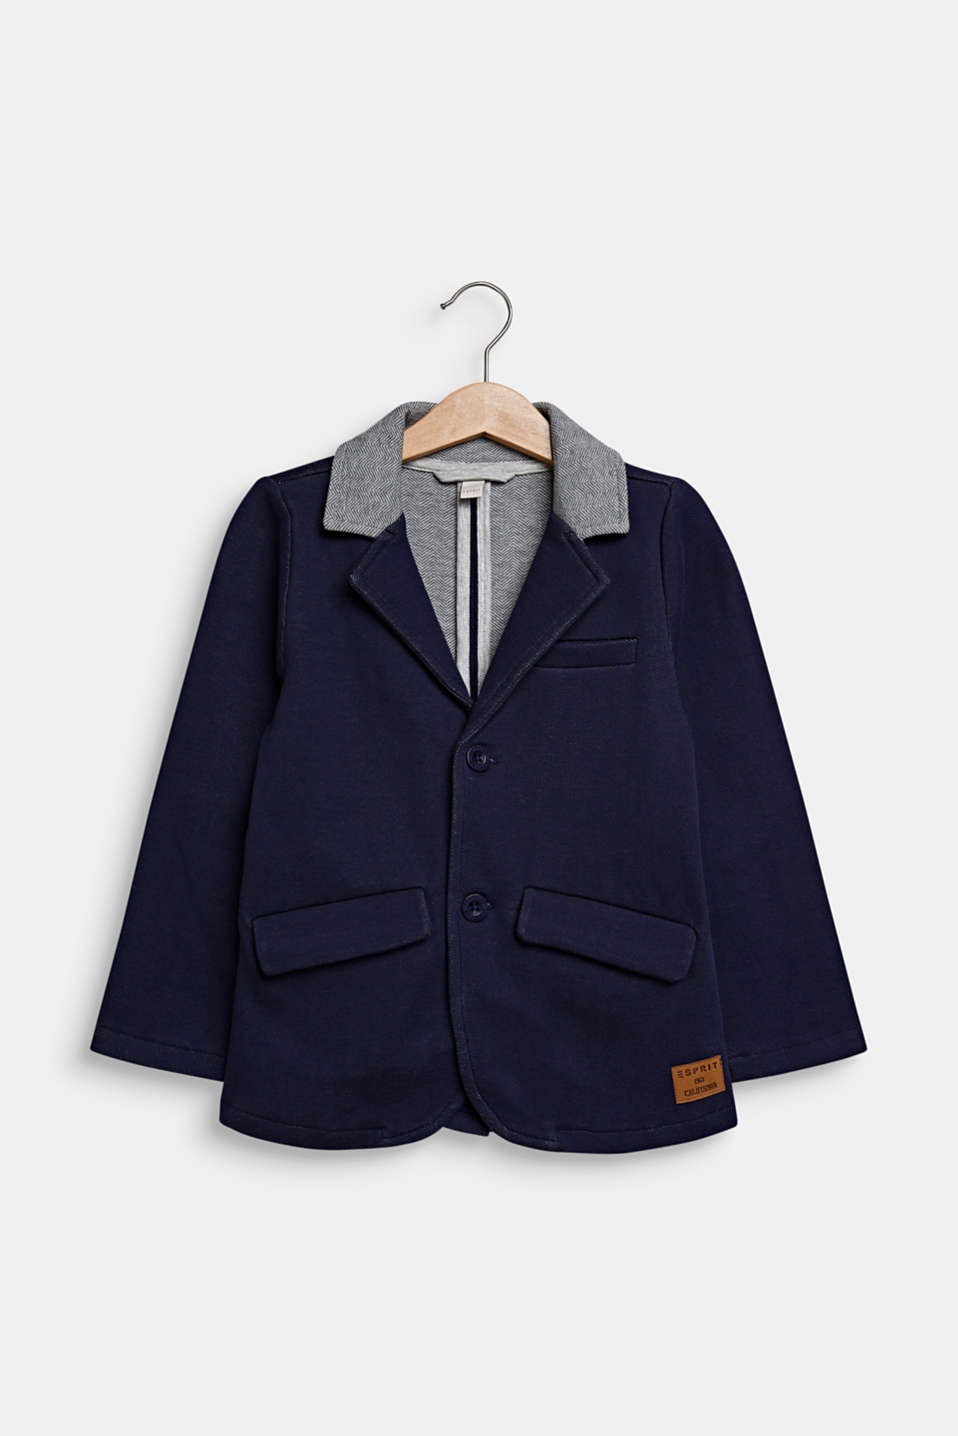 Esprit - Sweatblazer met elleboogpatches